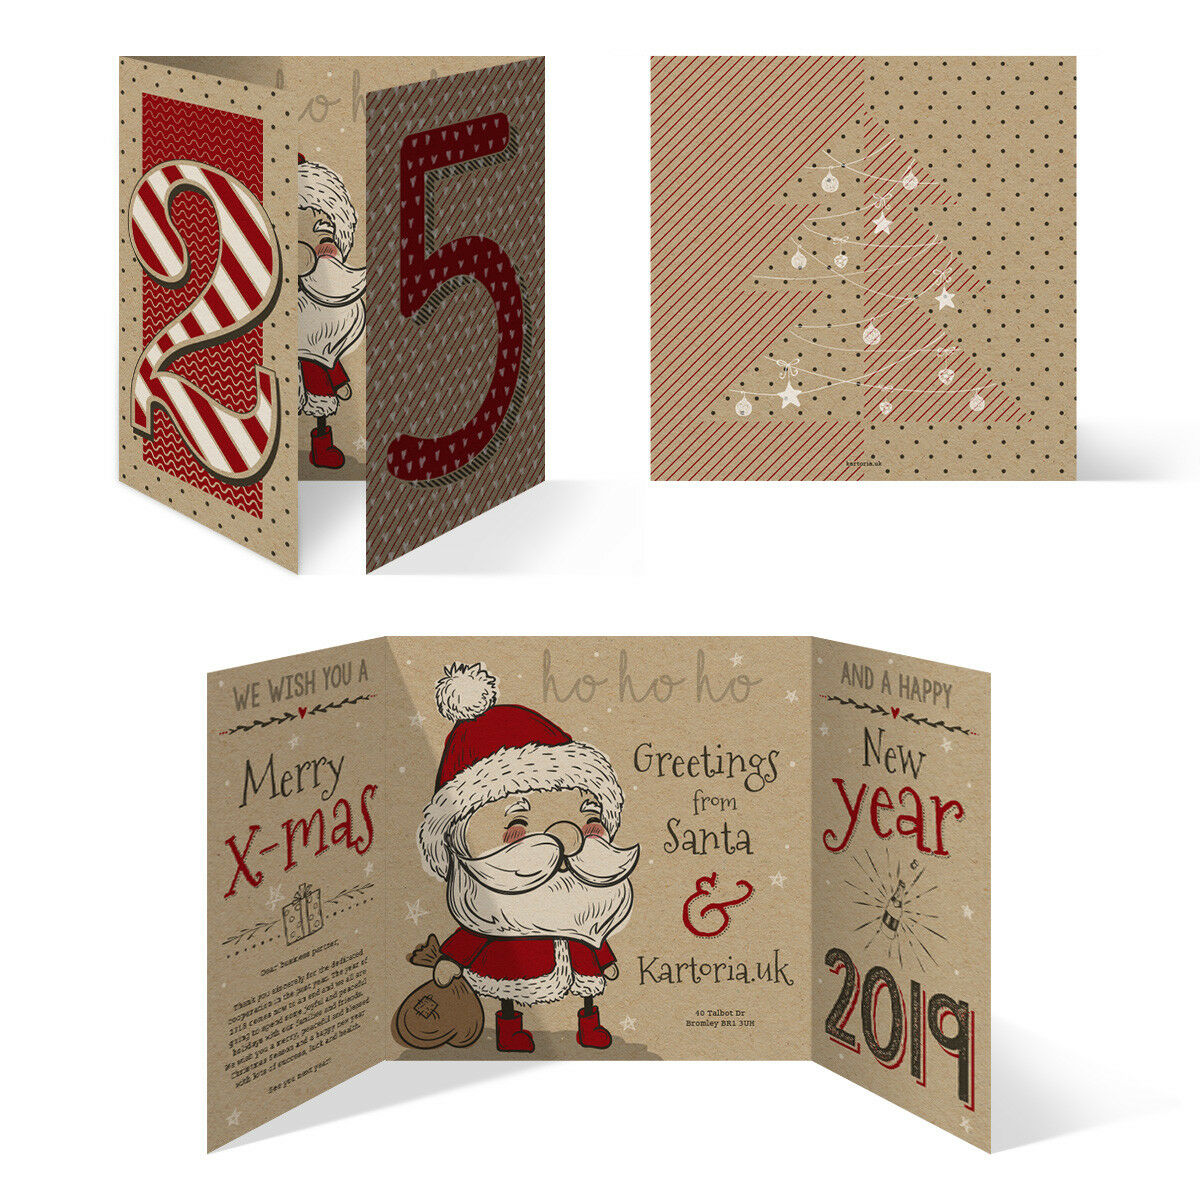 Geschaft Christmas Xmas Greeting Personalised Company Cards